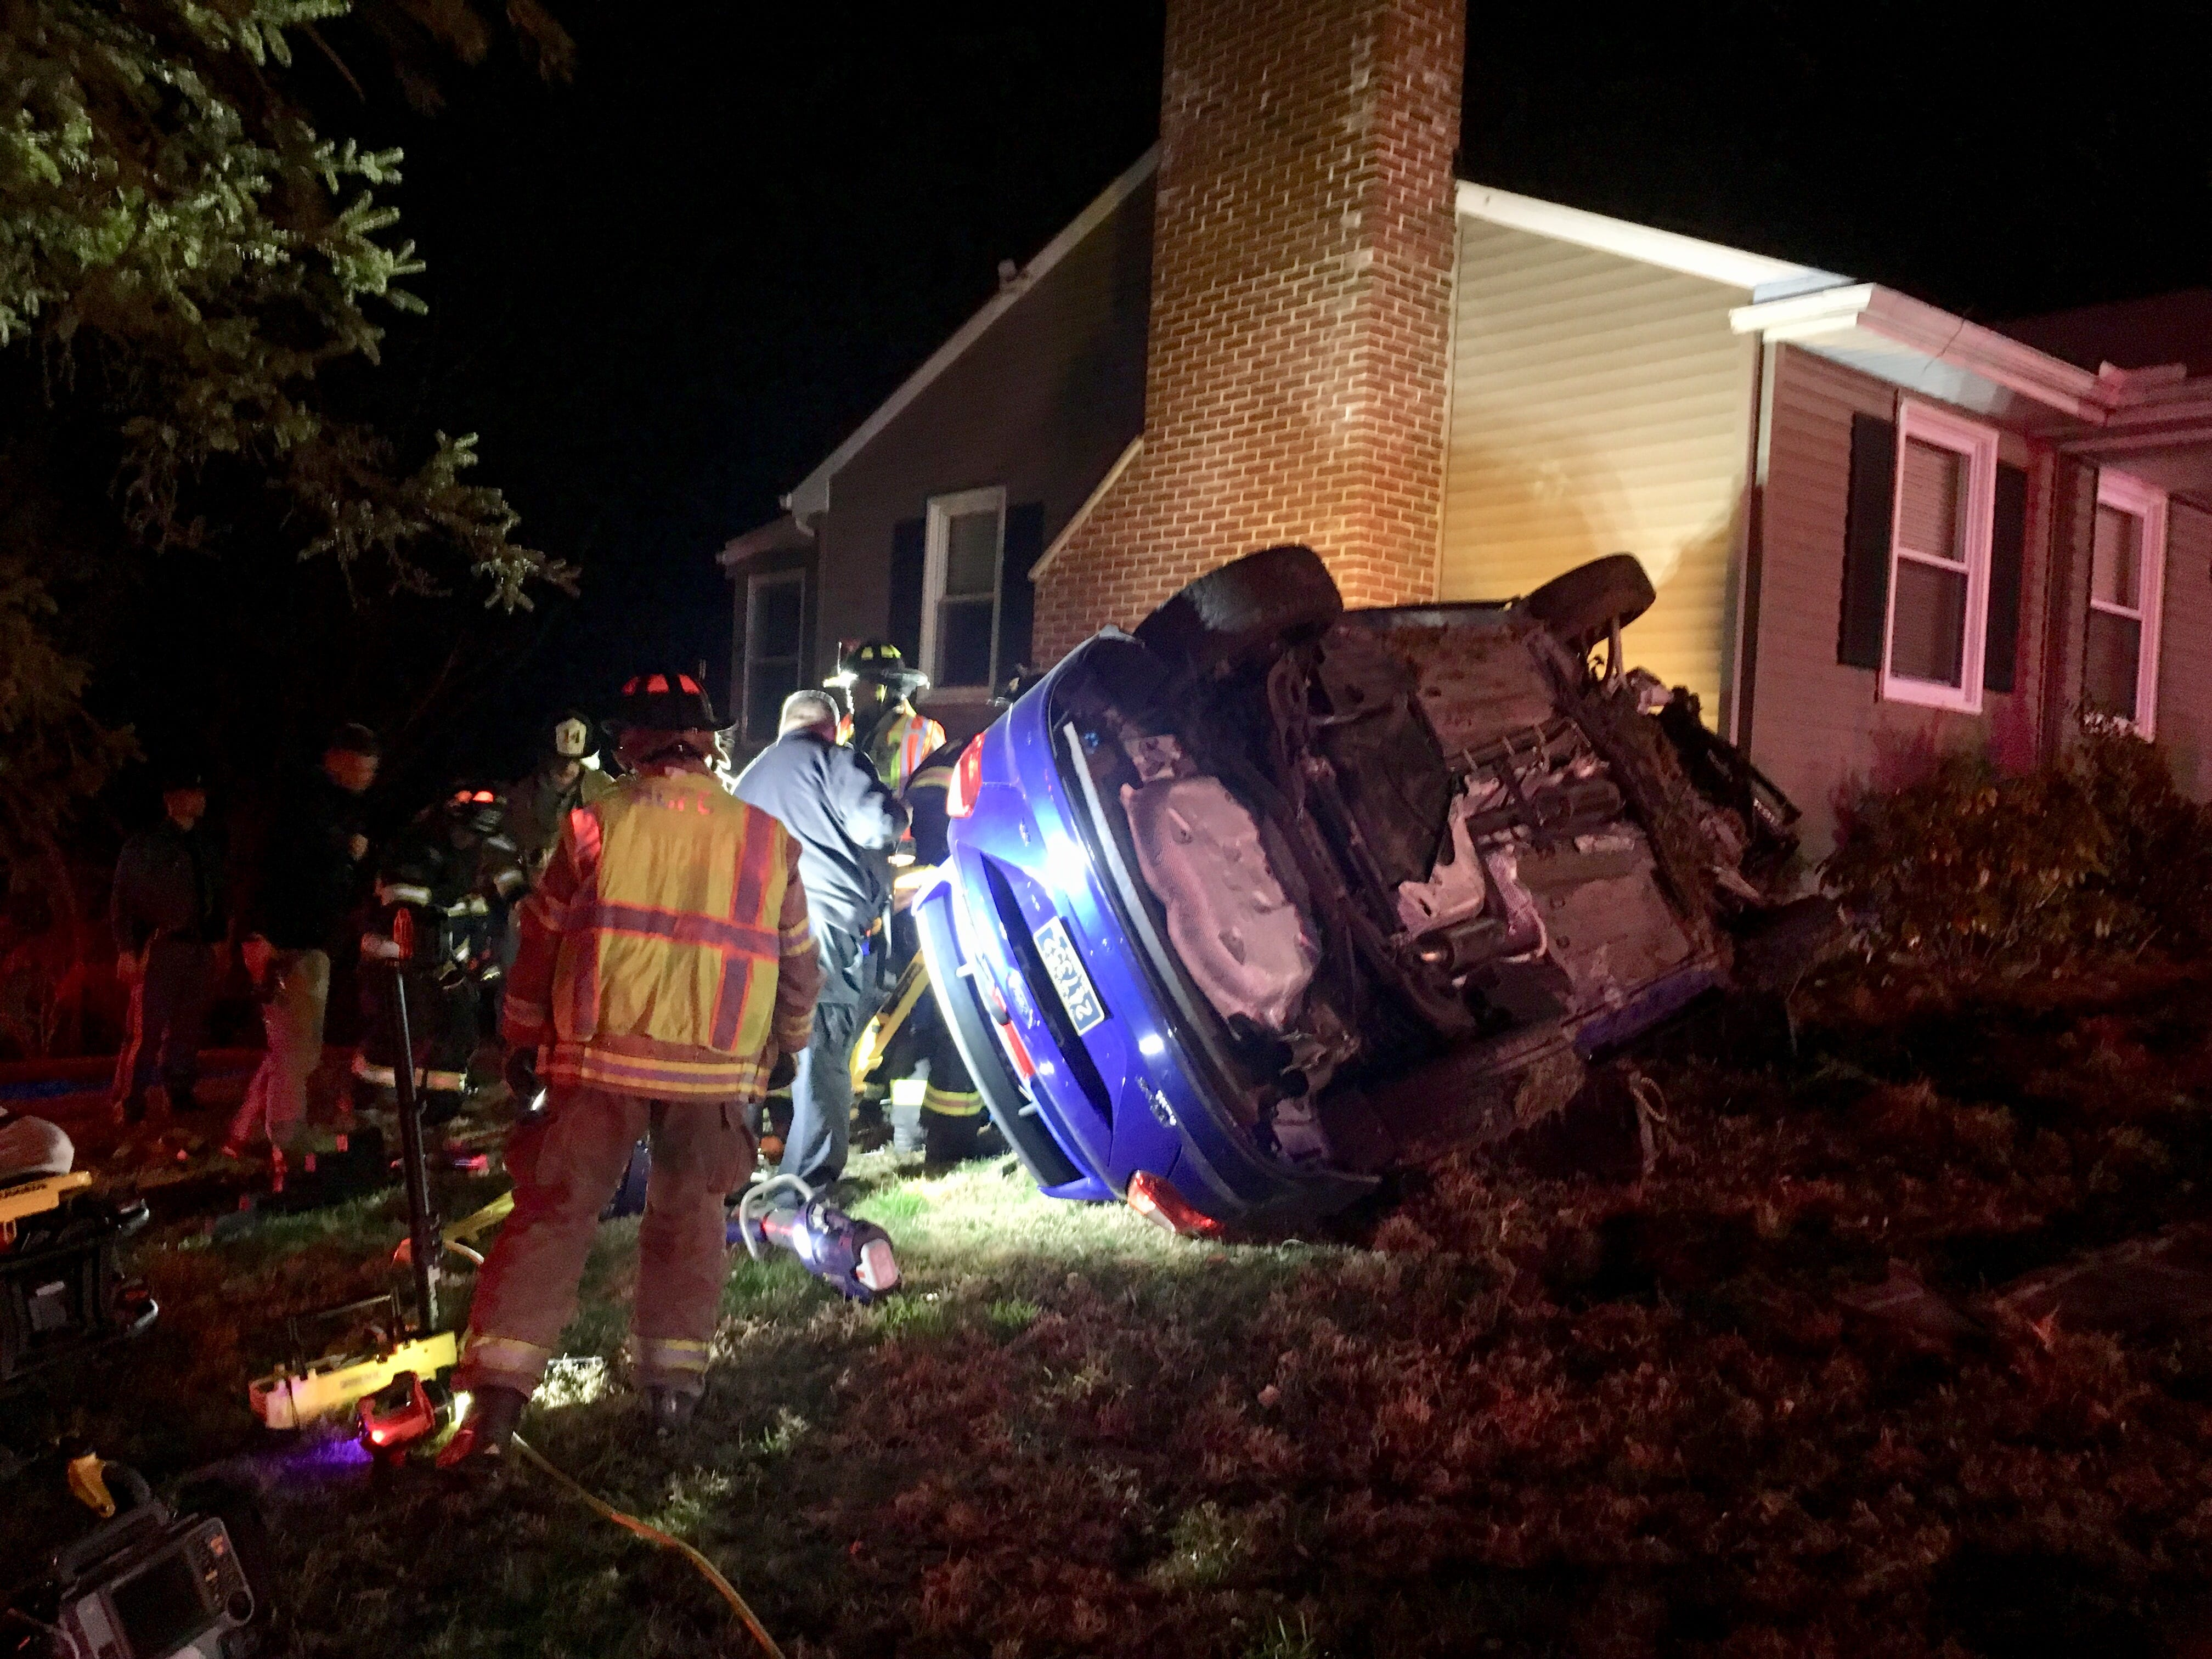 Man charged with 6th DUI after flipping car into yard of Hockessin home